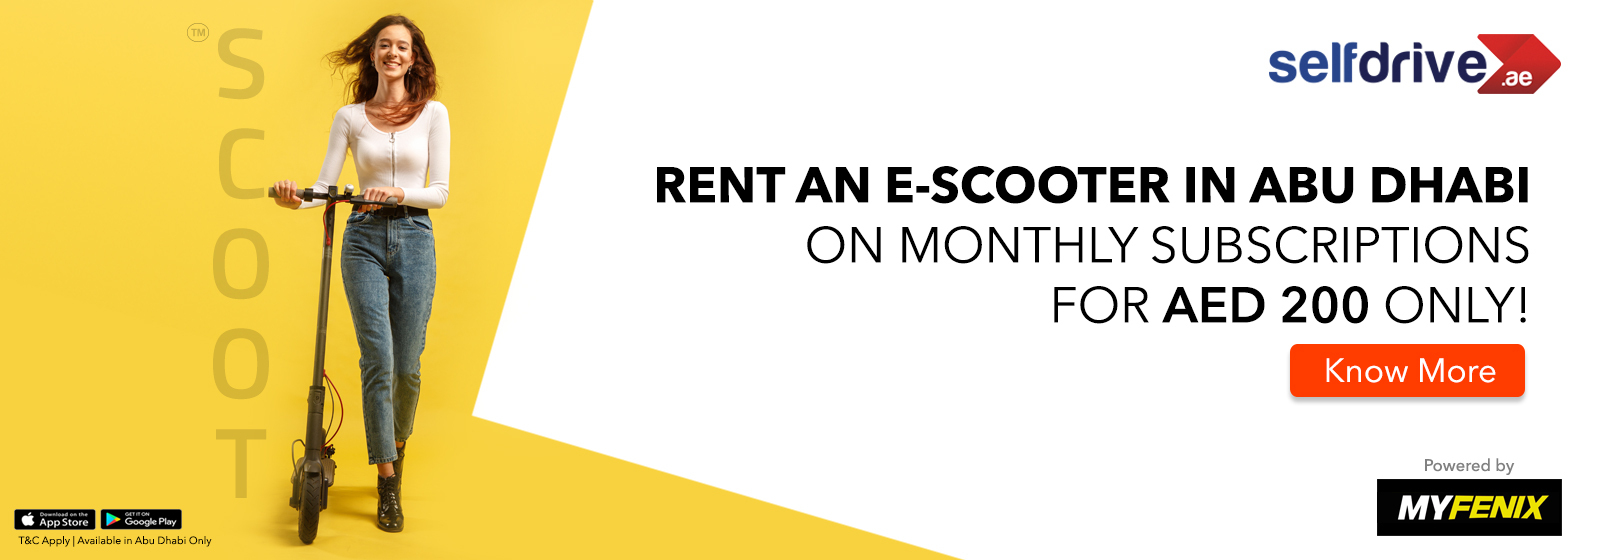 Rent Electric Scooters in Abu Dhabi